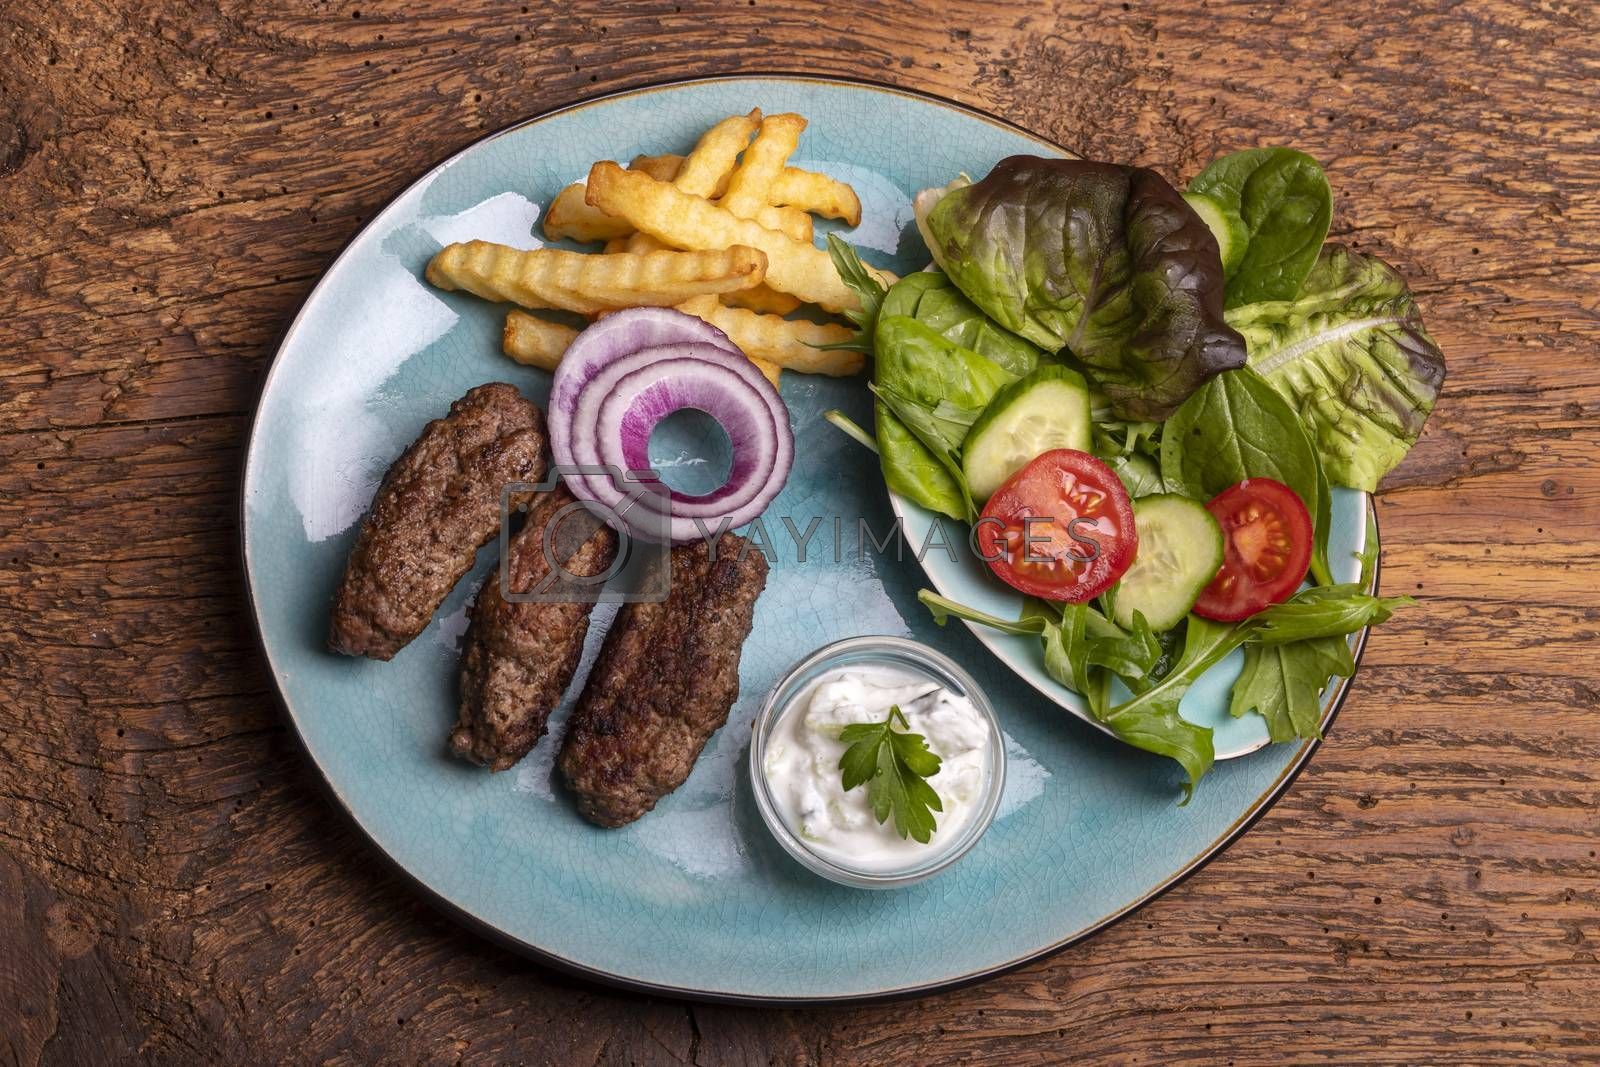 cevapcici with french fries and salad